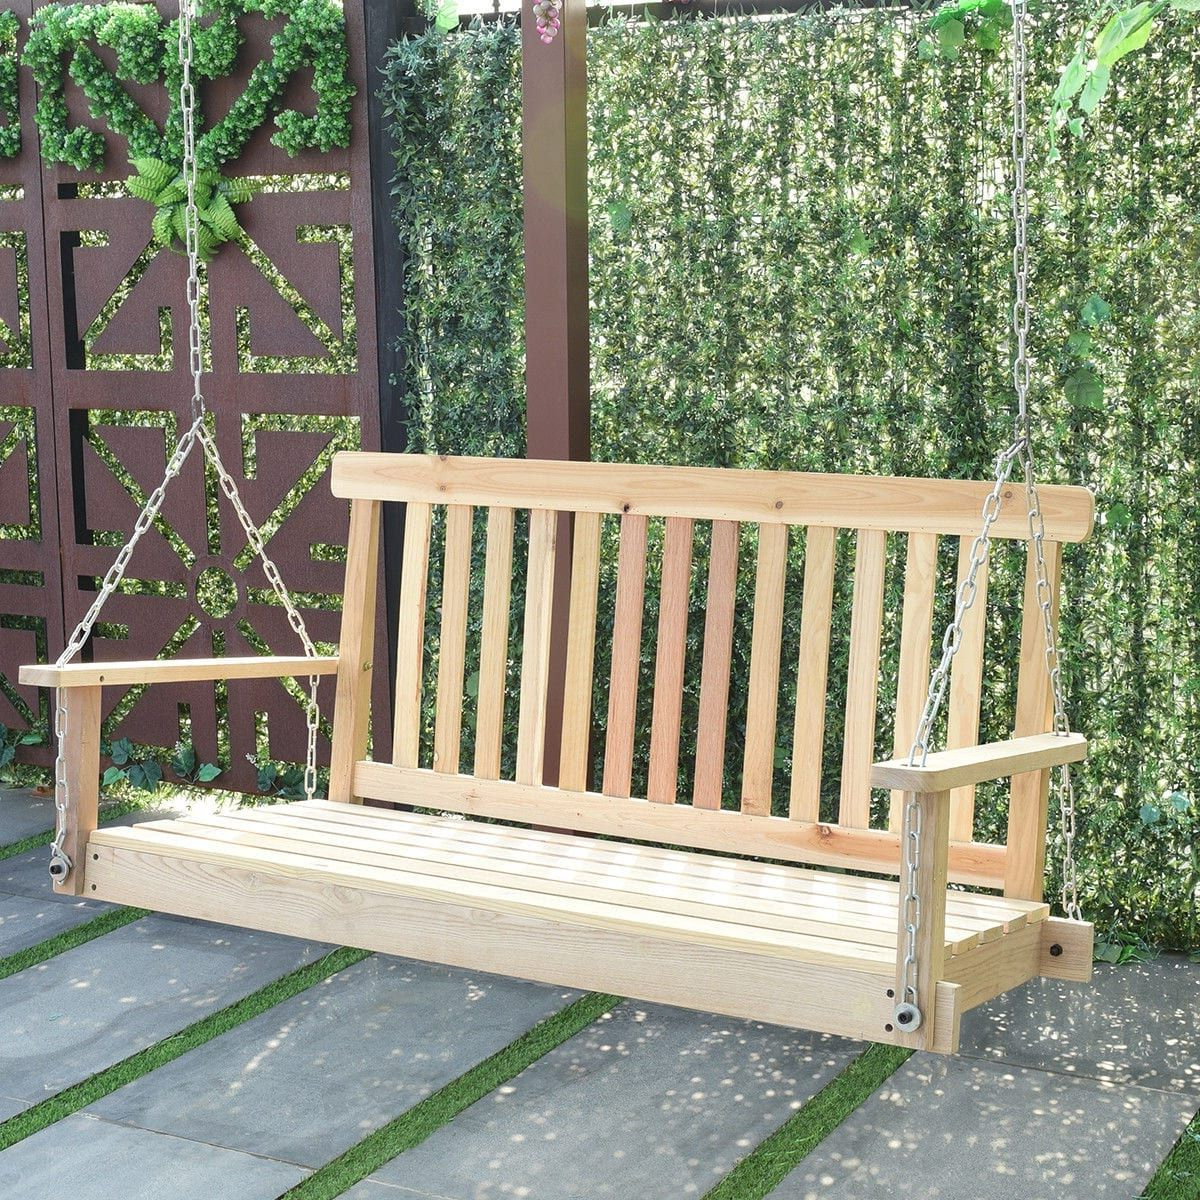 Costway 4 Ft Porch Swing Natural Wood Garden Swing Bench Within Current Fordyce Porch Swings (Gallery 21 of 30)